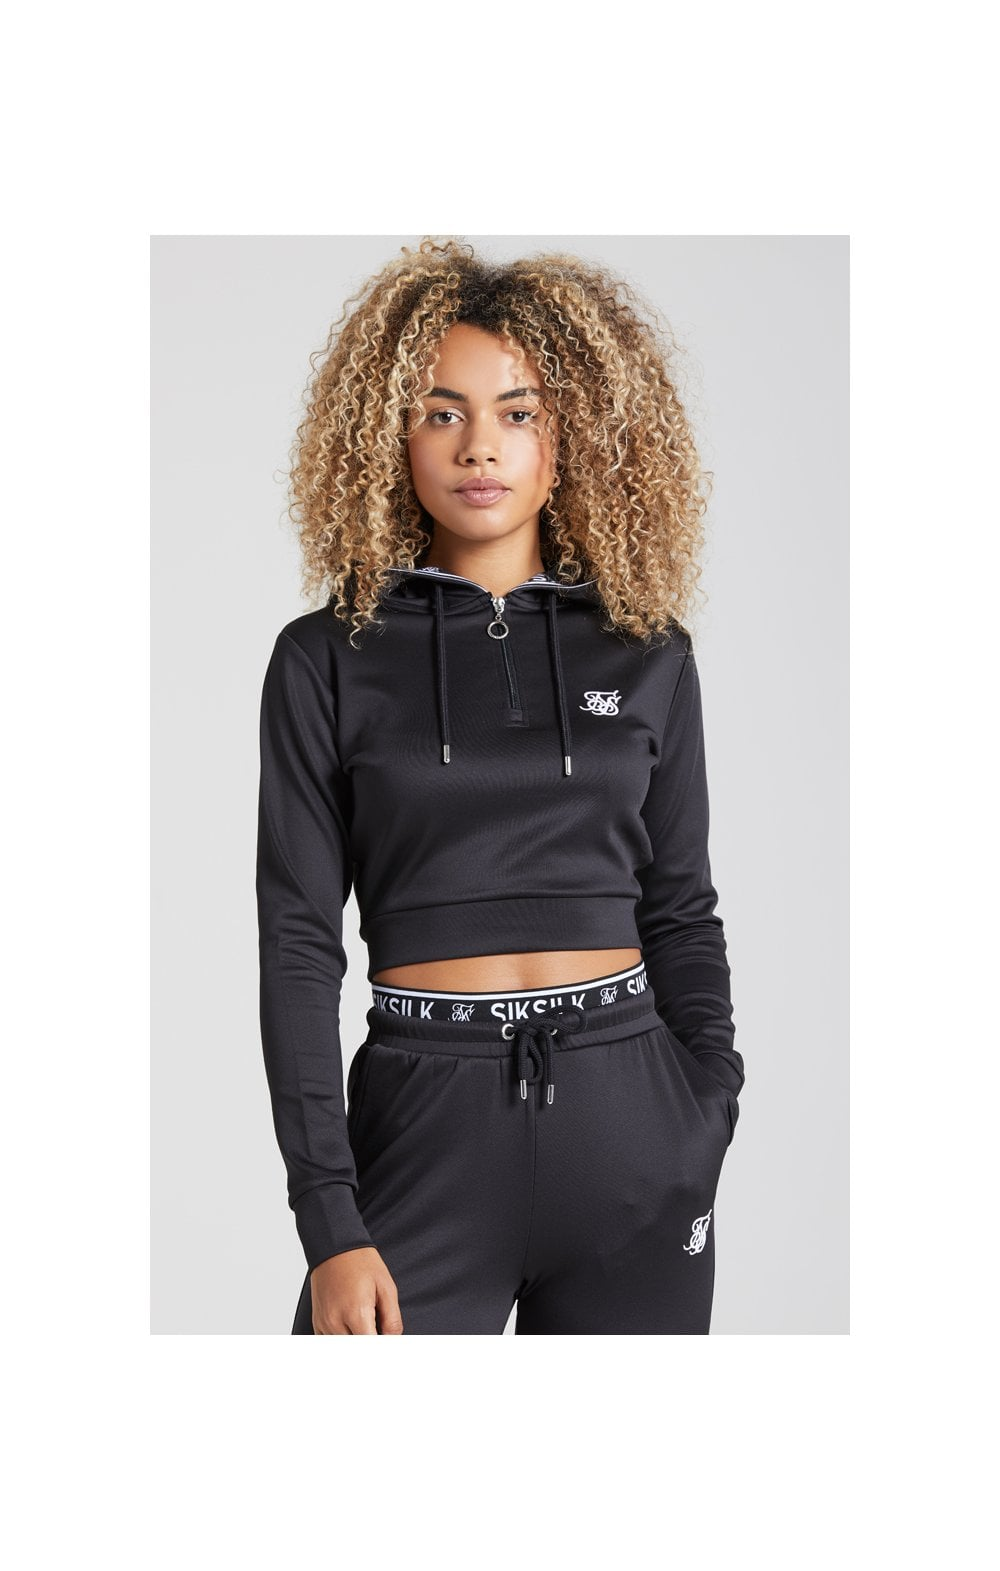 SikSilk Tape 1/4 Zip Track Top - Black WOMEN SIZES: 10-S